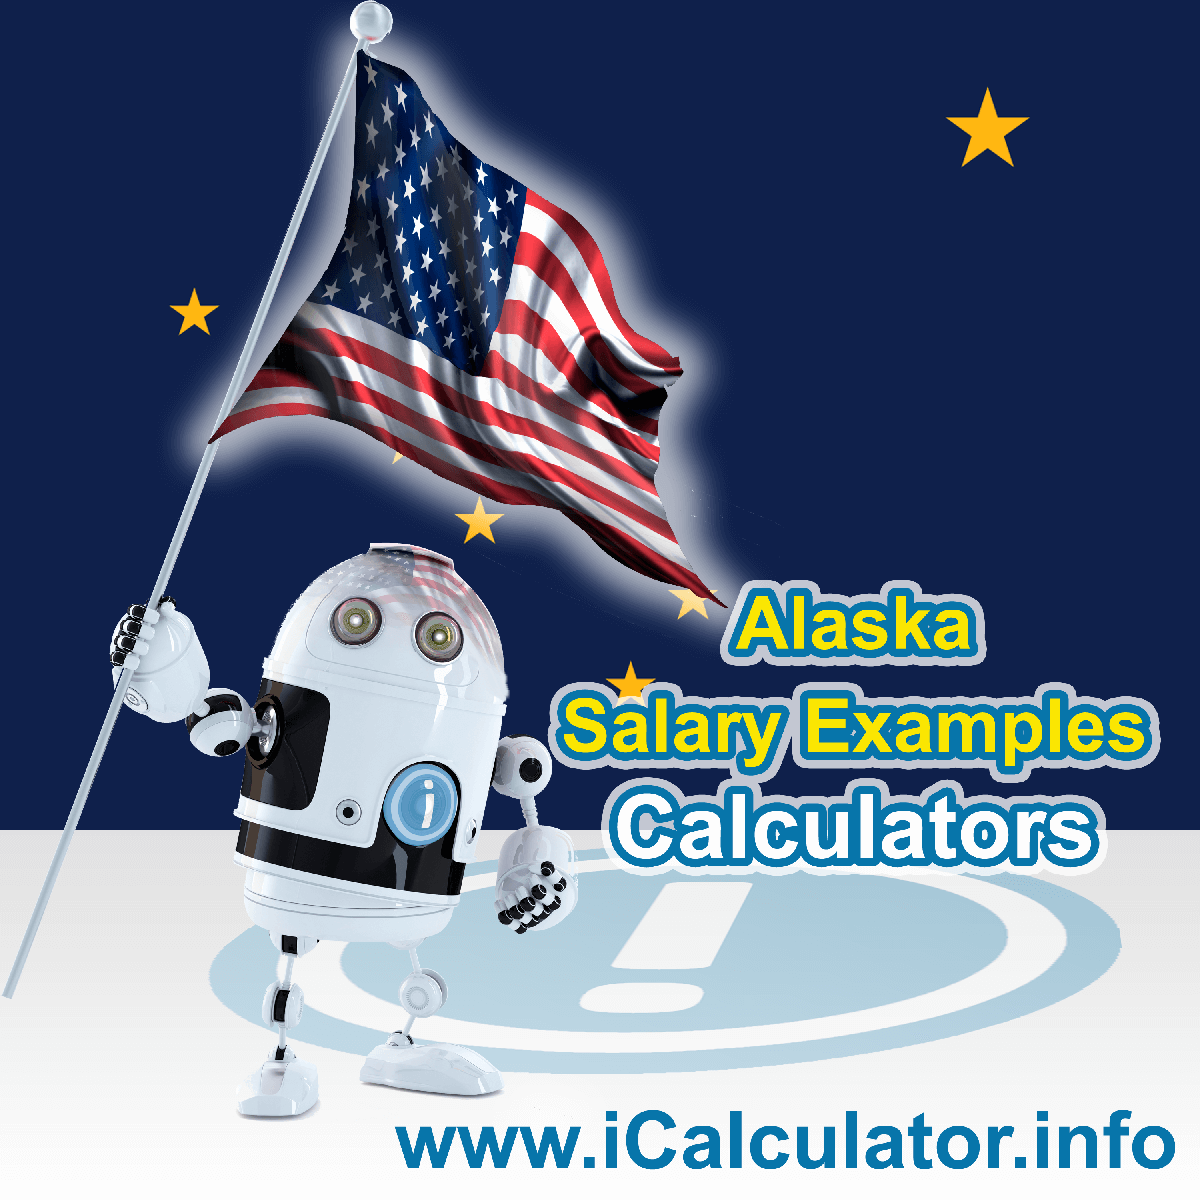 Alaska Salary Example for $210,000.00 in 2020 | iCalculator | $210,000.00 salary example for employee and employer paying Alaska State tincome taxes. Detailed salary after tax calculation including Alaska State Tax, Federal State Tax, Medicare Deductions, Social Security, Capital Gains and other income tax and salary deductions complete with supporting Alaska state tax tables